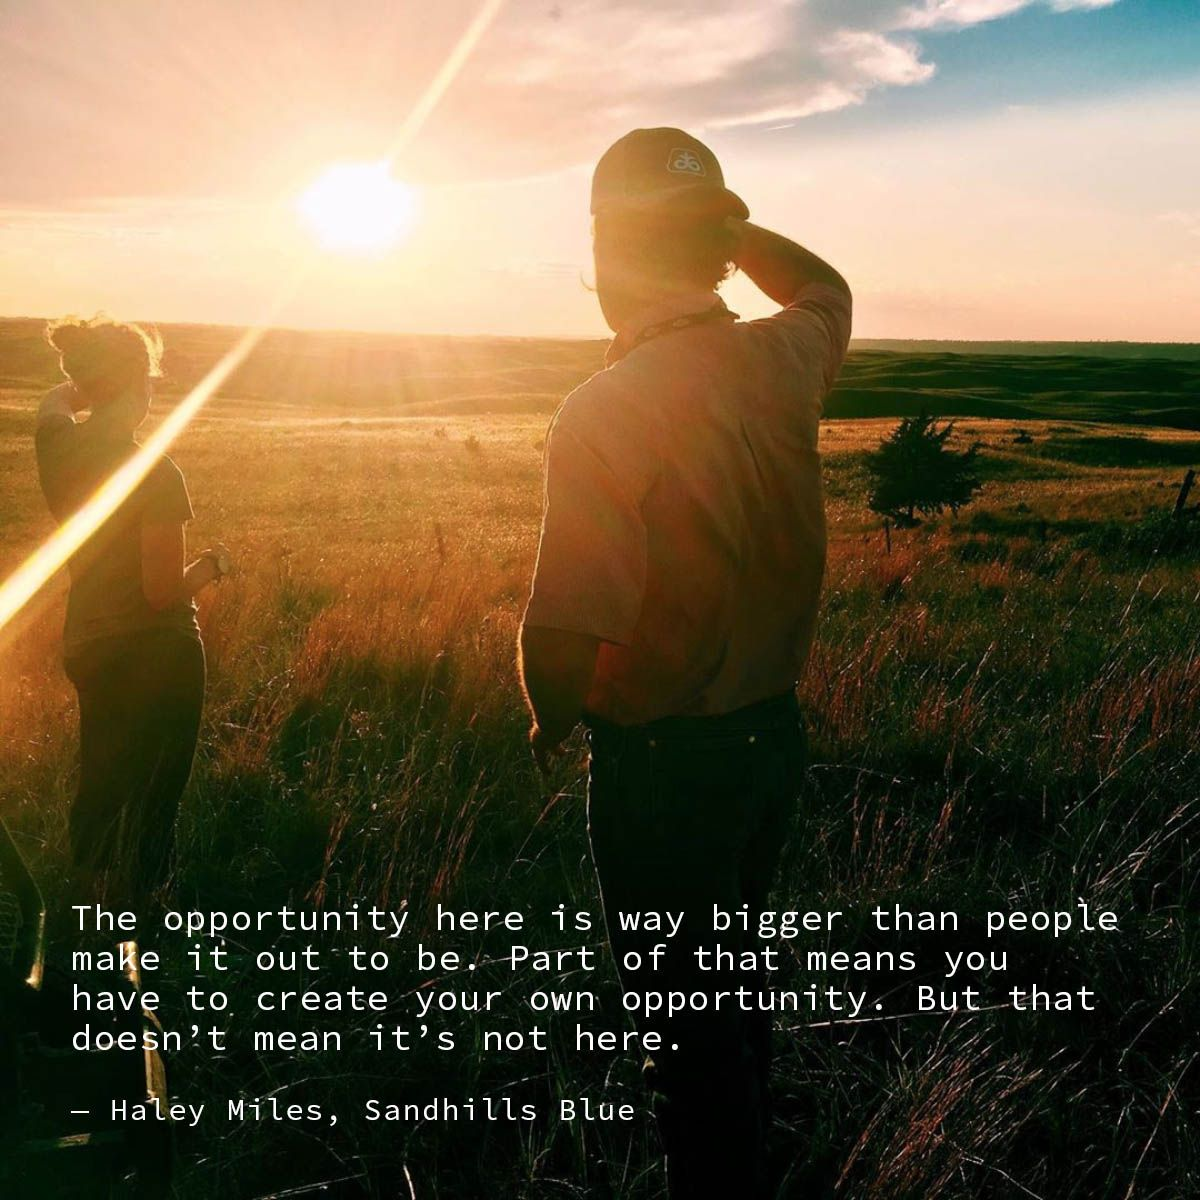 The opportunity here is way bigger than people make it out to be. Part of that means you have to create your own opportunity. But that doesn't mean it's not here. — Haley Miles #sandhills #nebraska #ainsworth #photography #smalltownlove #smalltown #rurallife #farmlife #ruralrevival